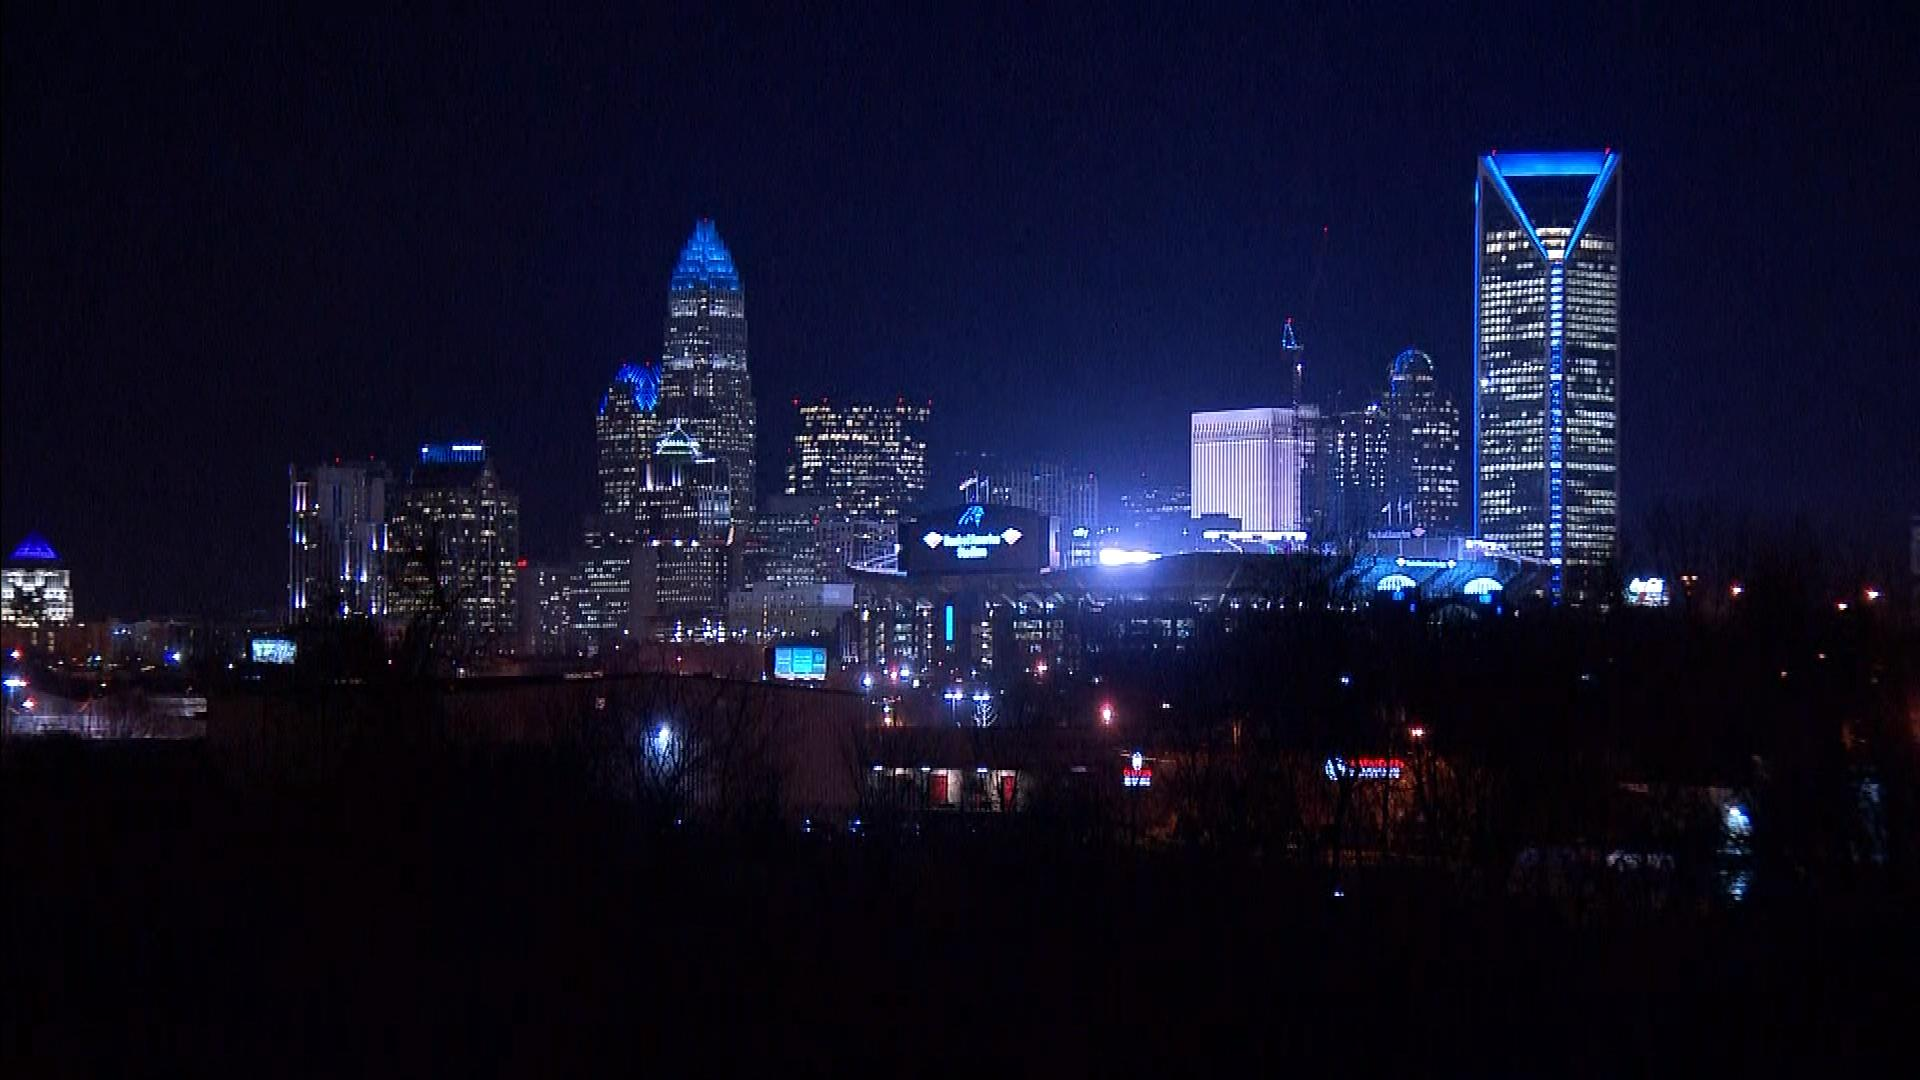 Charlotte lit up in Panther blue at night (credit; CBS)